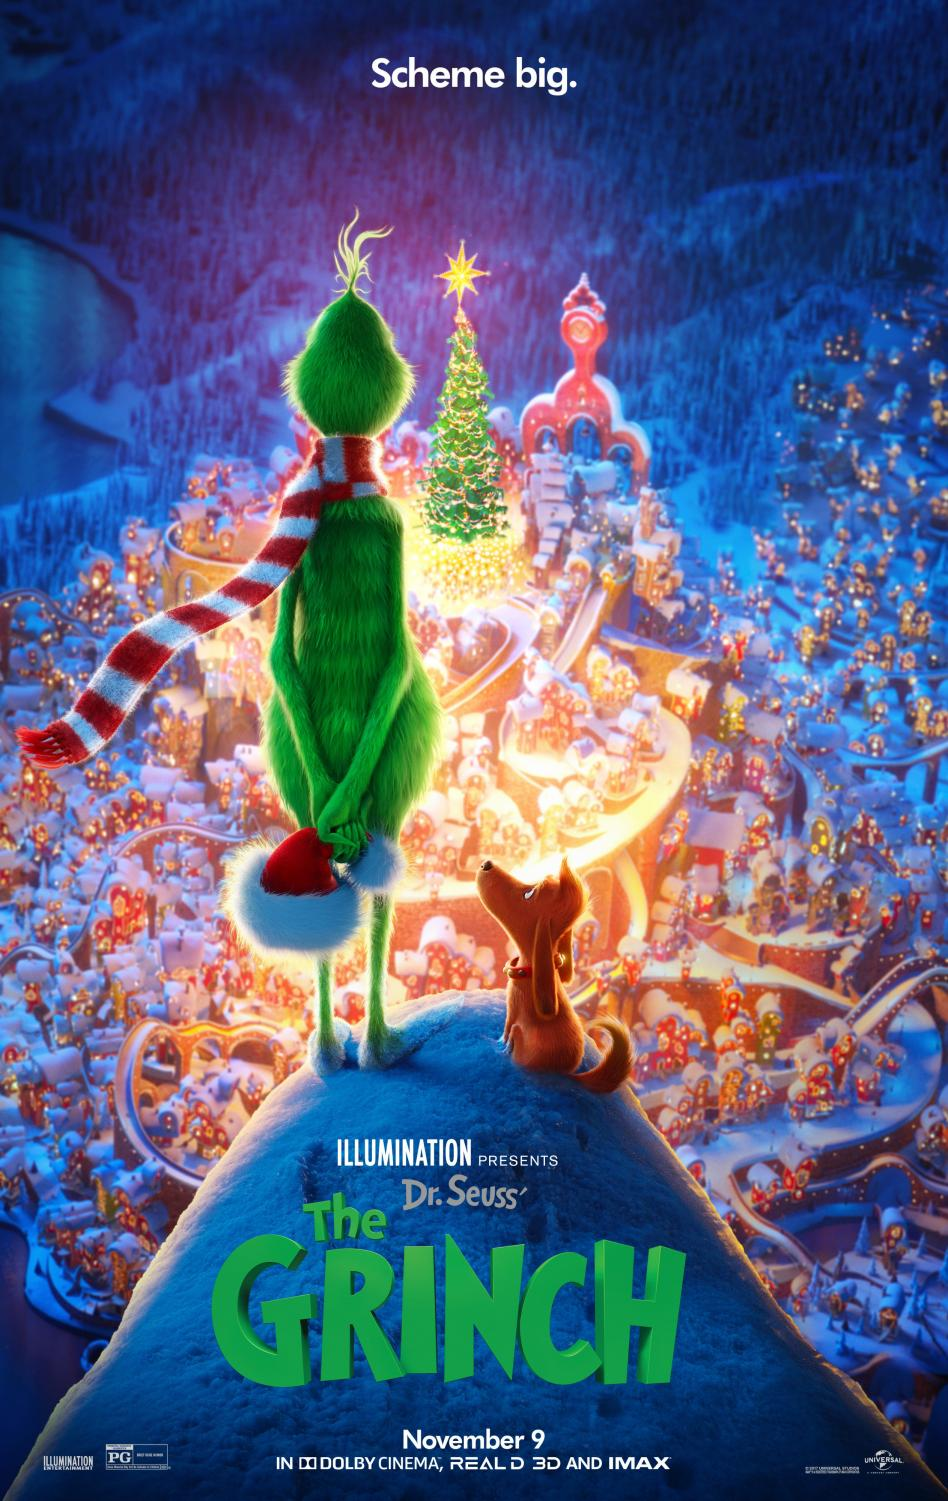 The Grinch flops into theaters